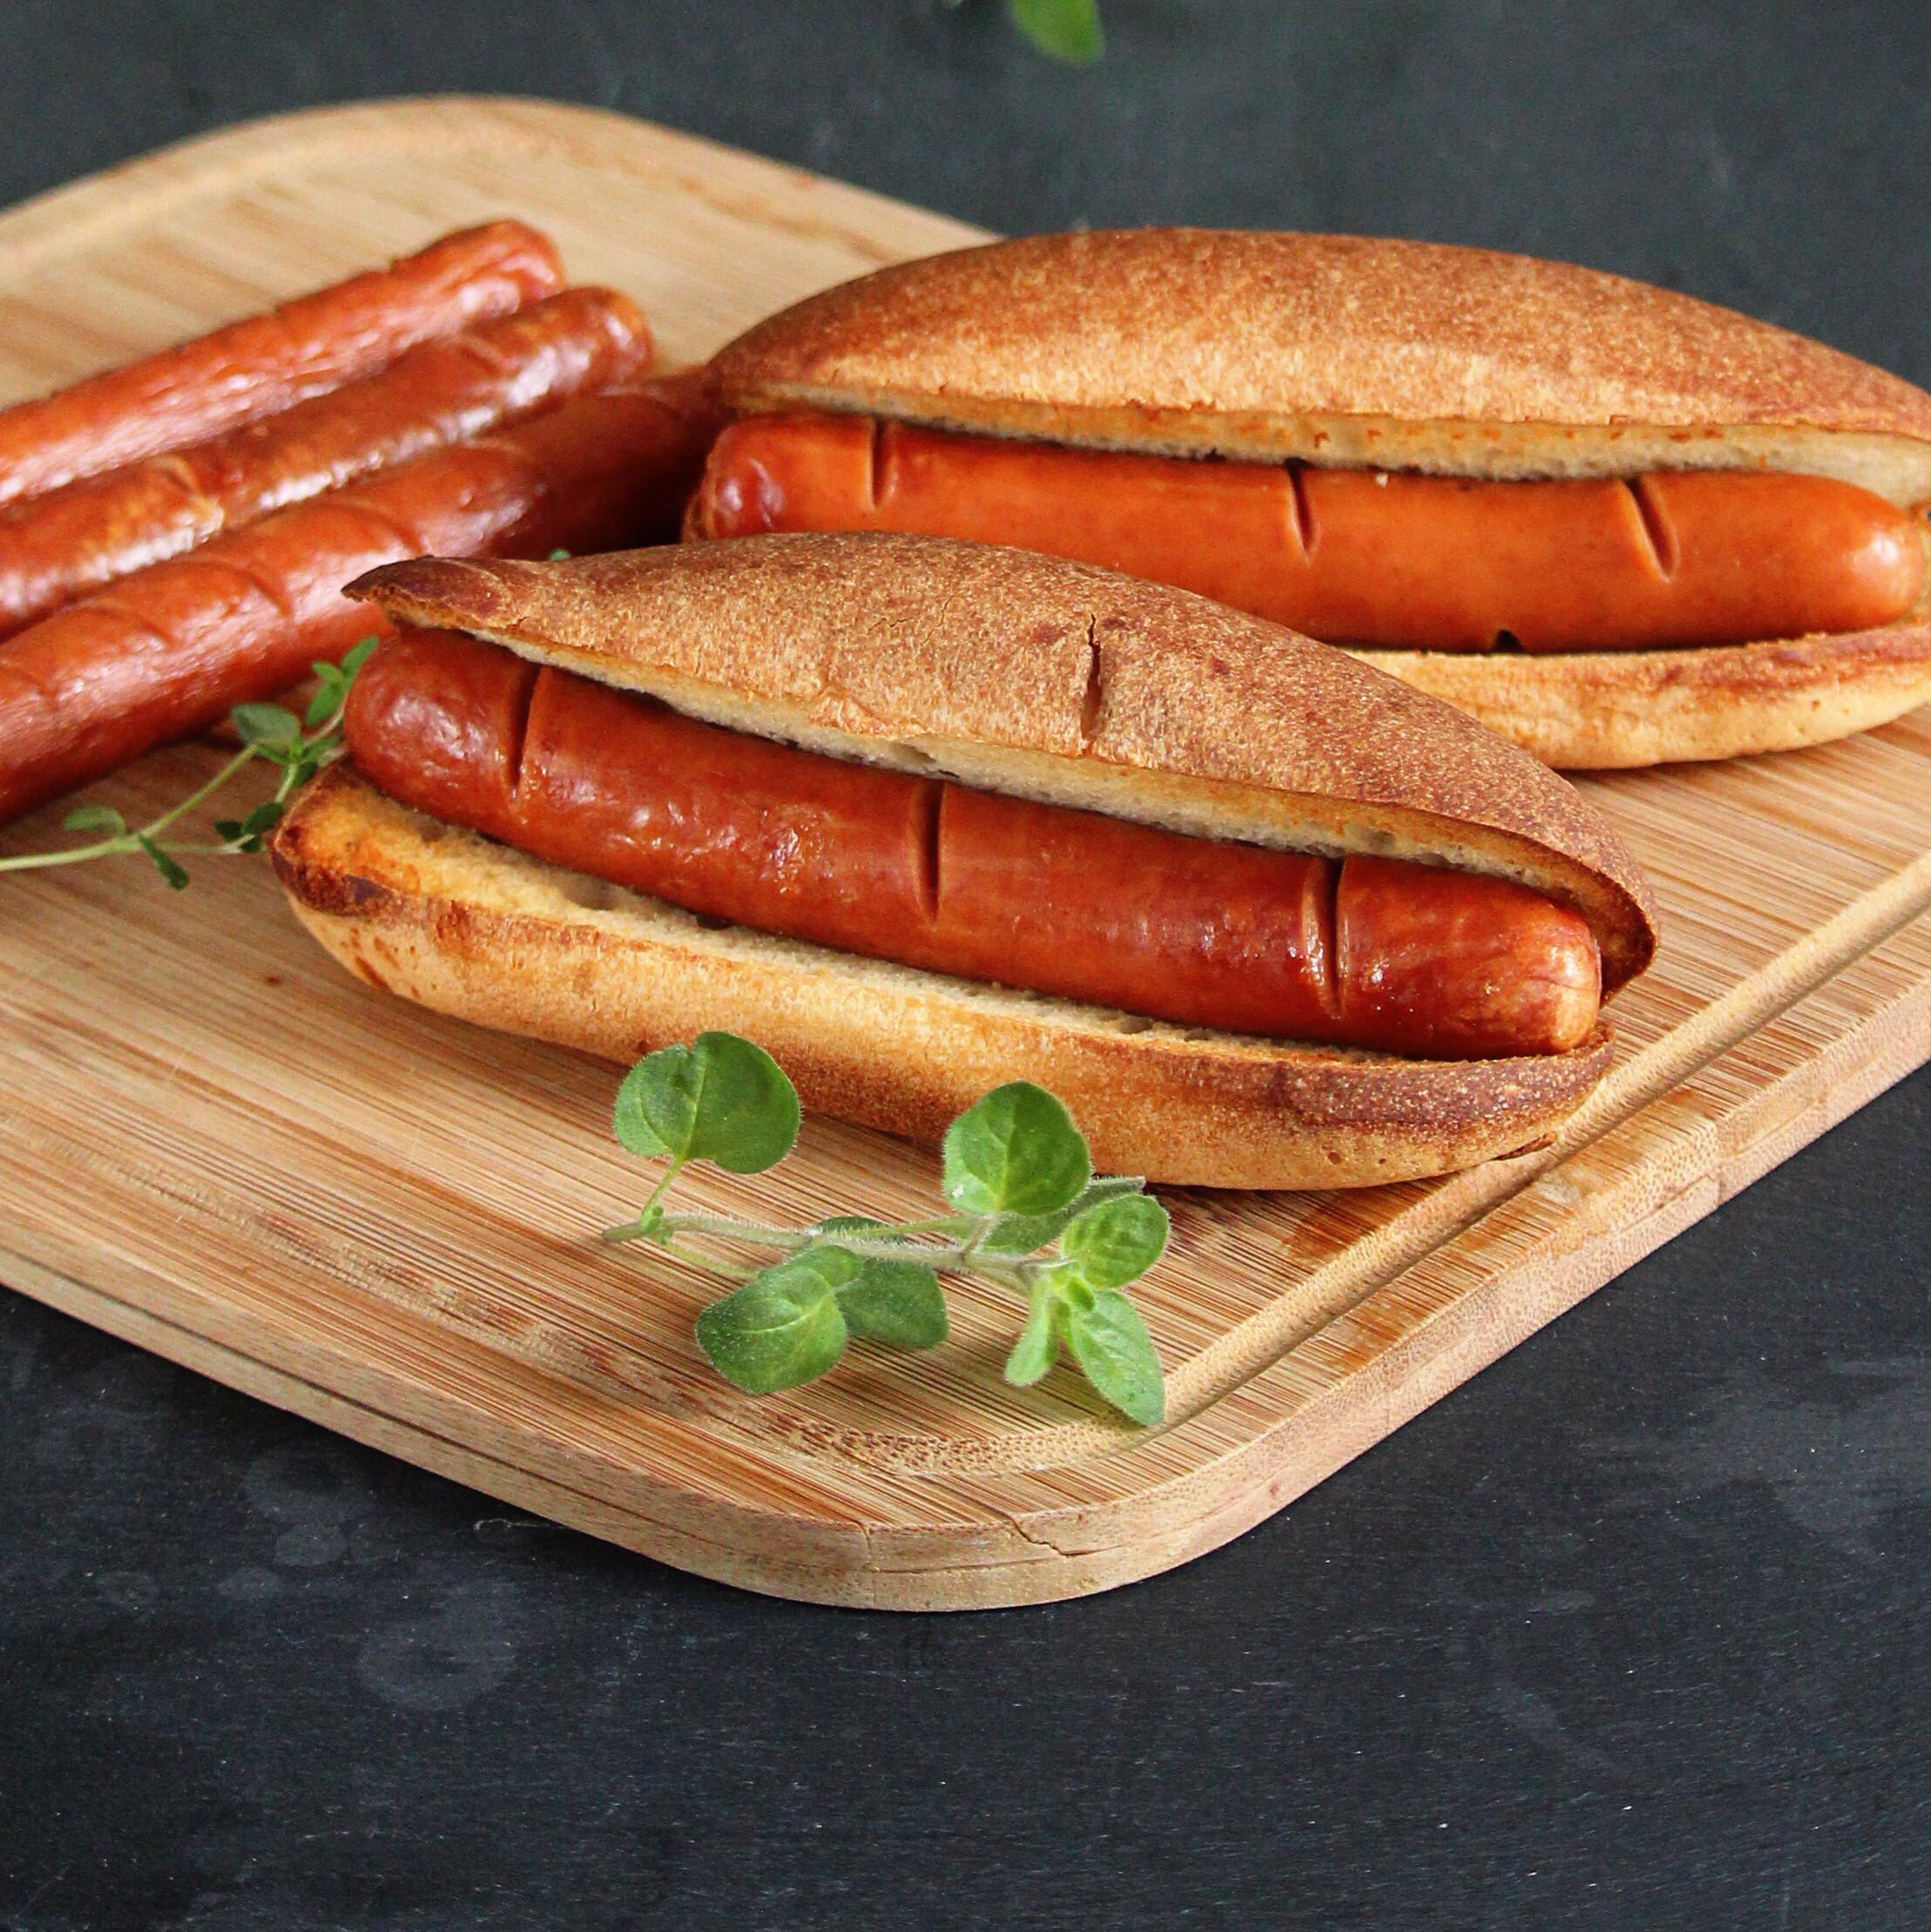 Basic Air Fryer Hot Dogs